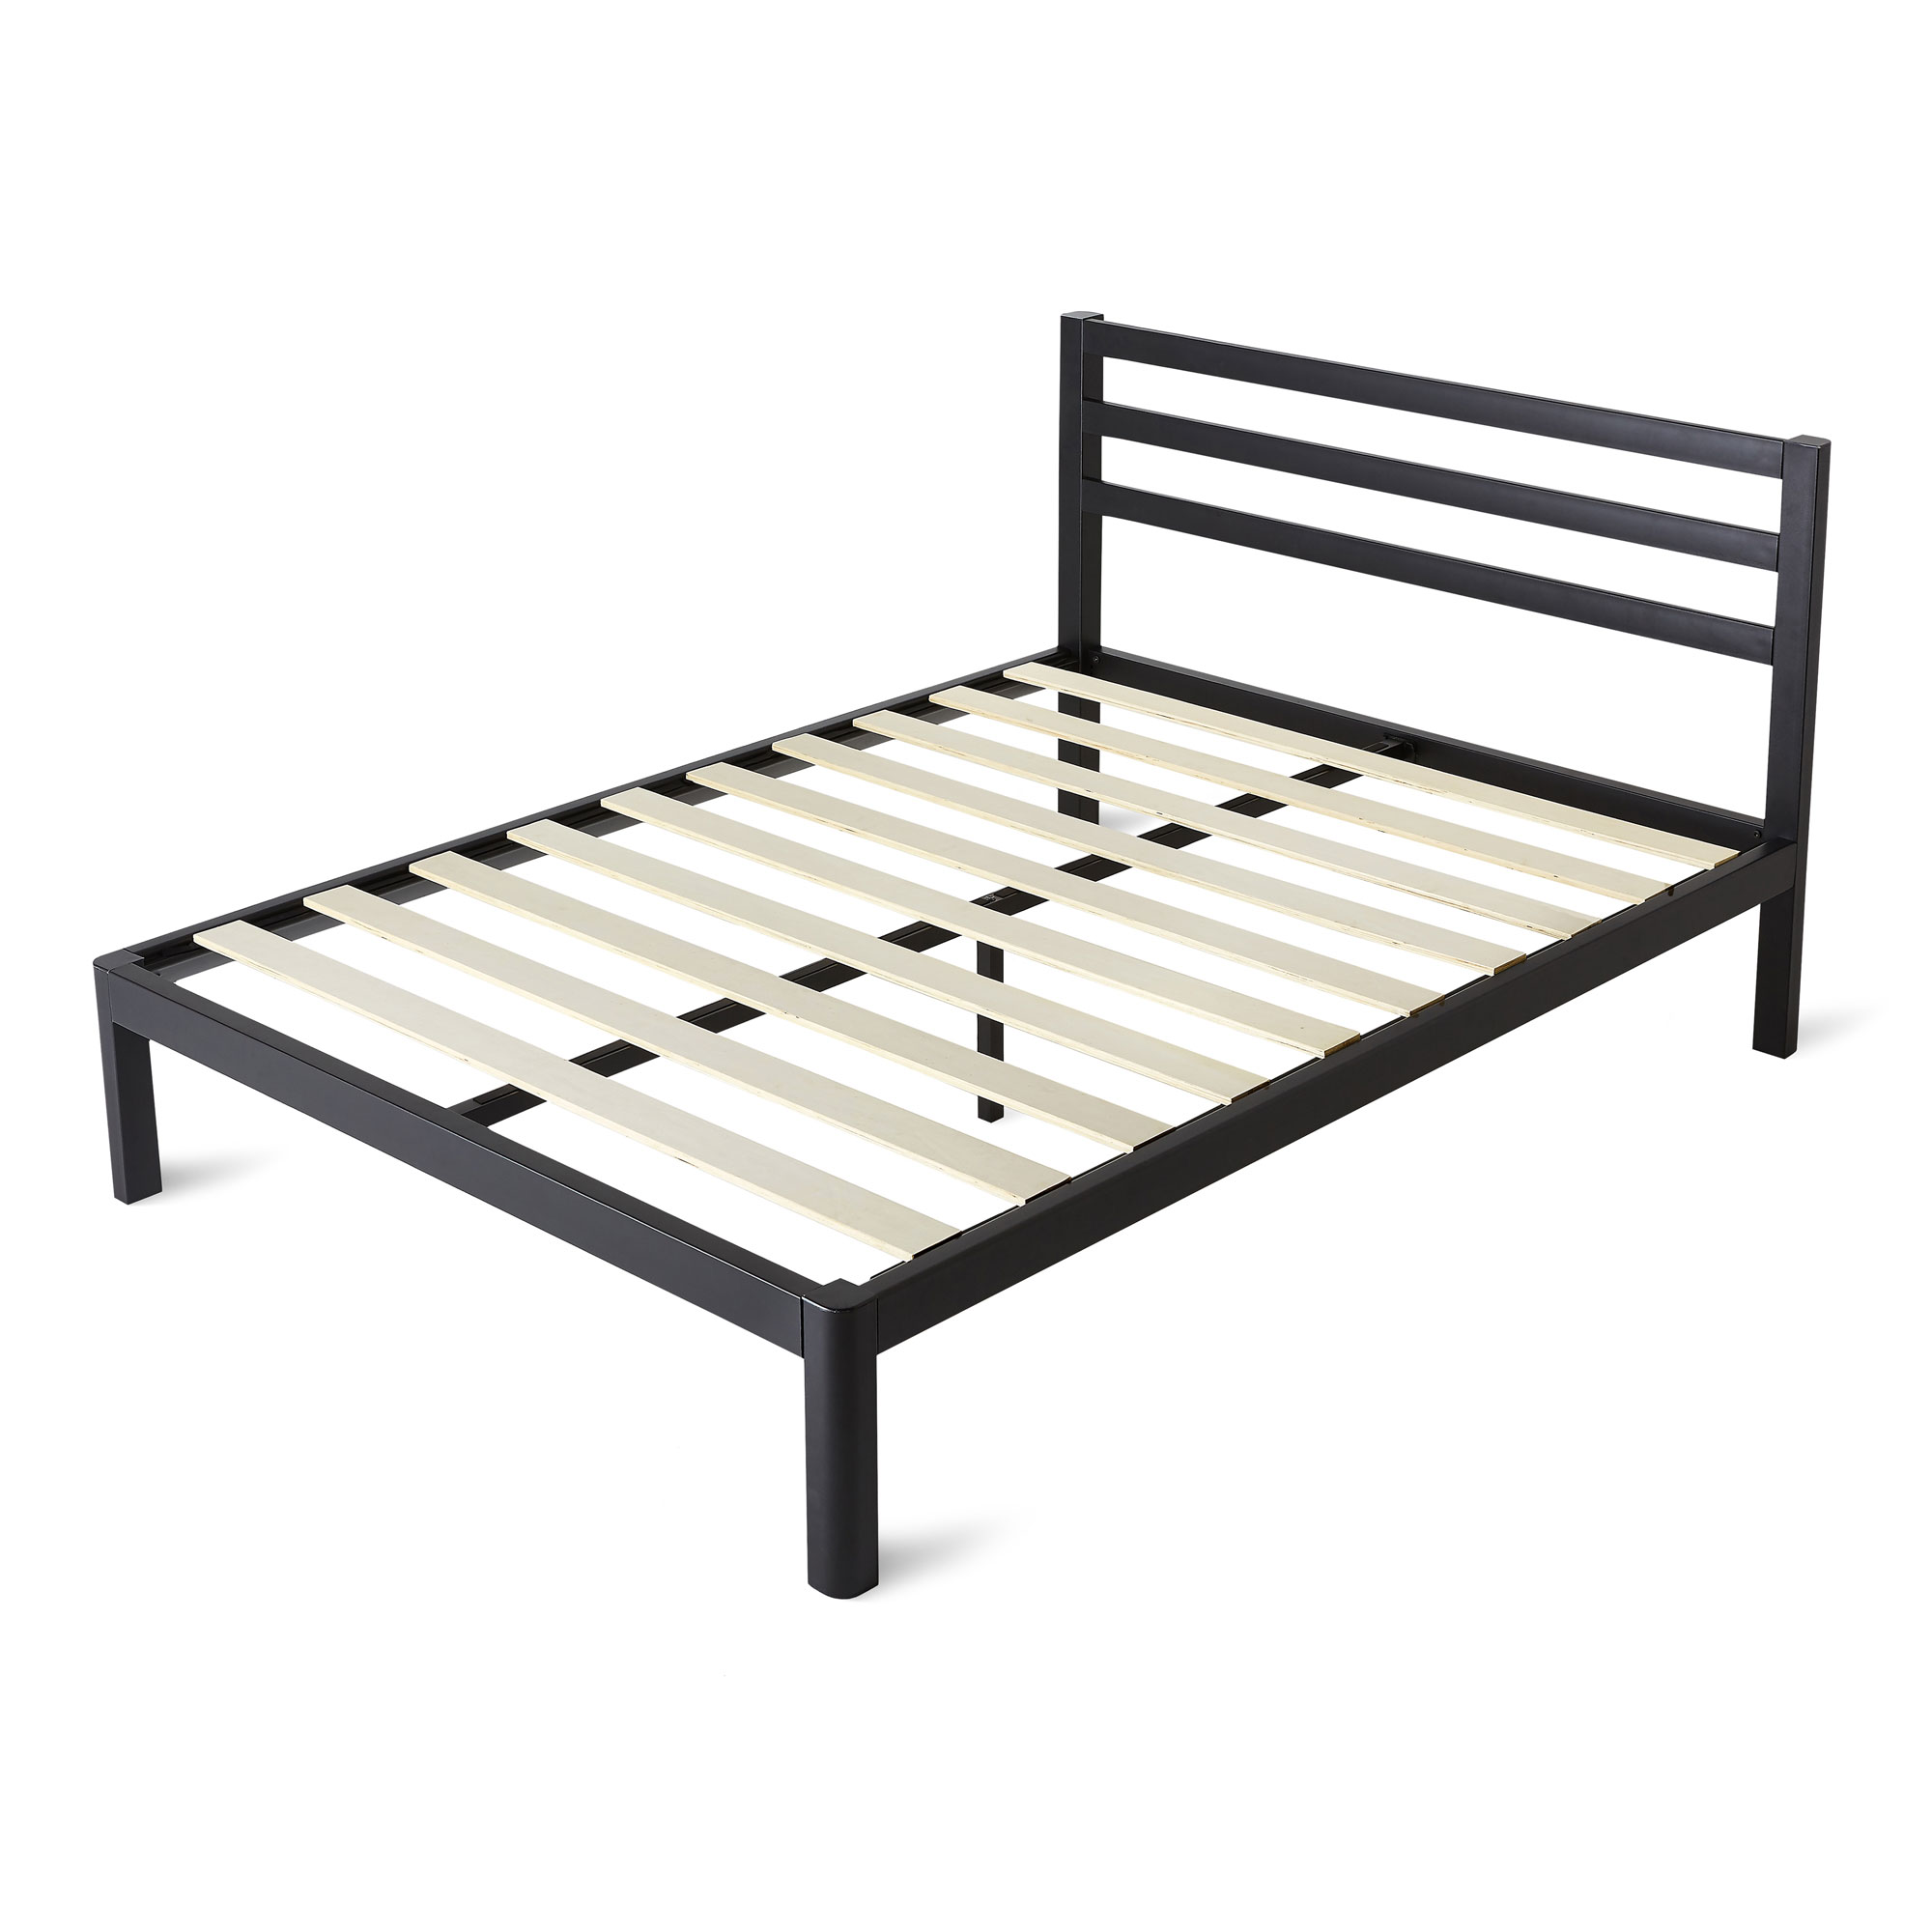 intelliBASE Queen Size Wooden Slat Black Metal Platform Bed Frame with Headboard